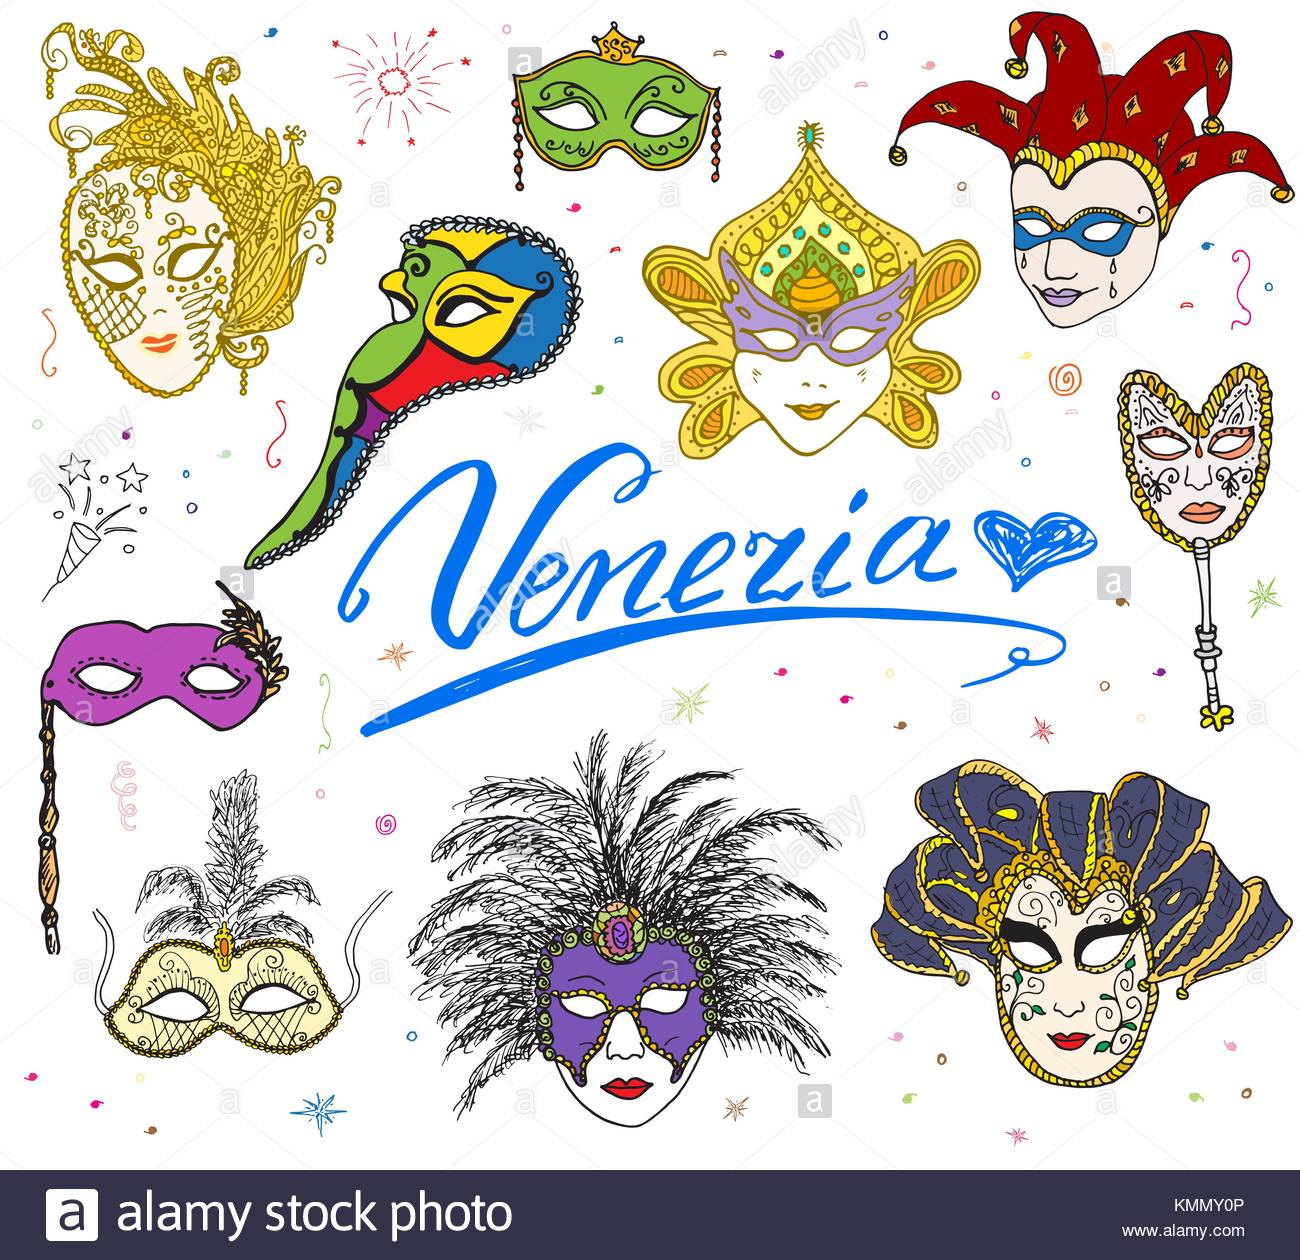 1300x1260 Venice Italy Sketch Carnival Venetian Masks Hand Drawn Set